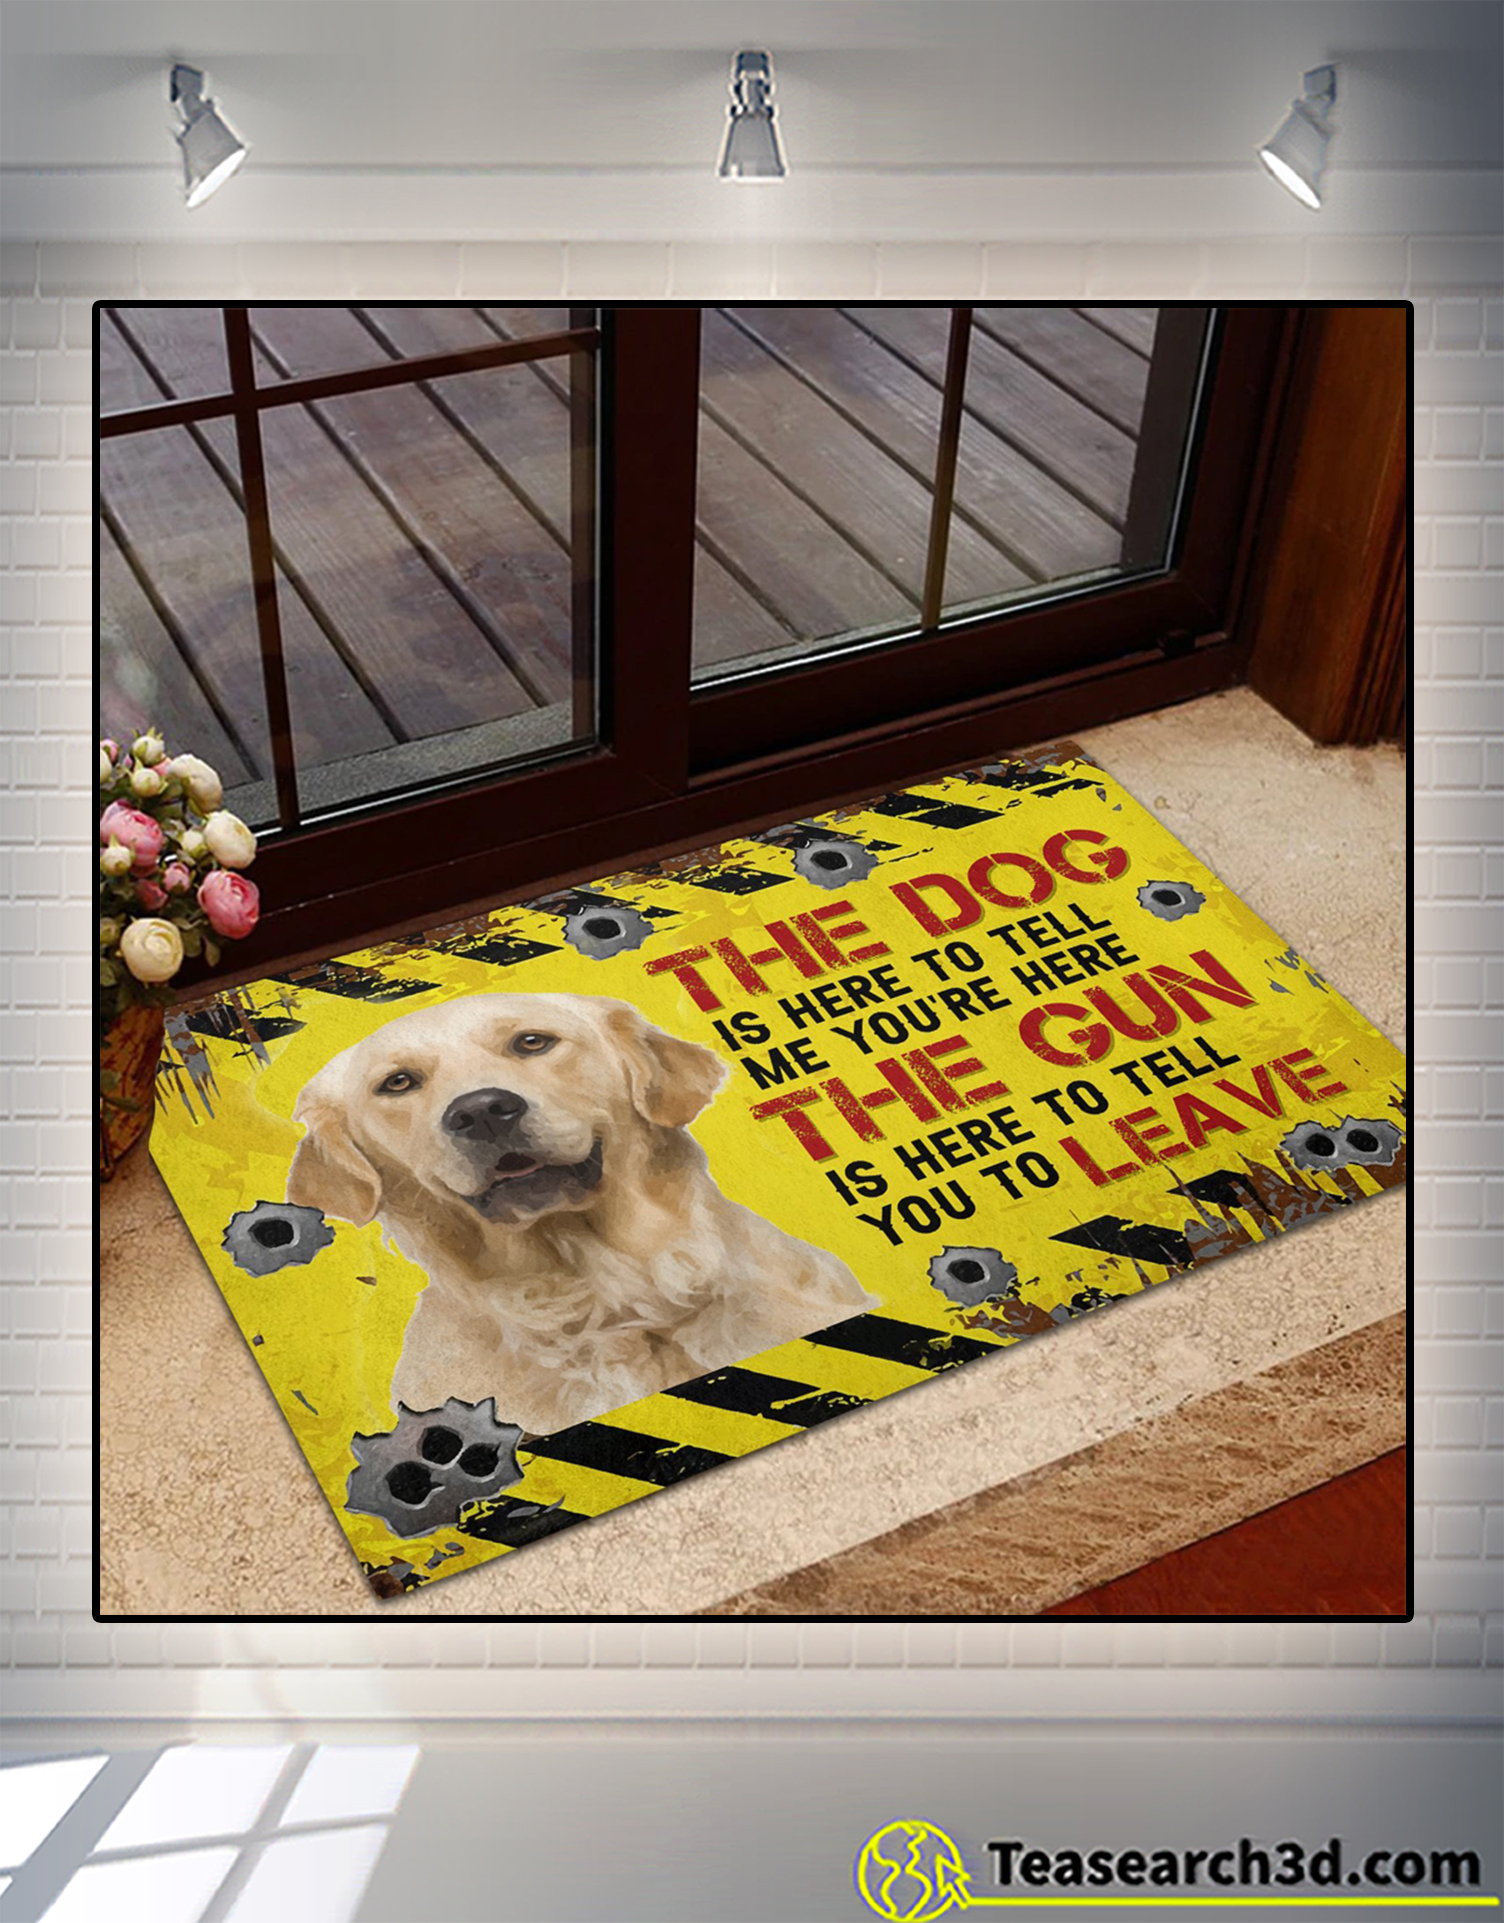 Golden Retriever The dog is here to tell me you're here doormat